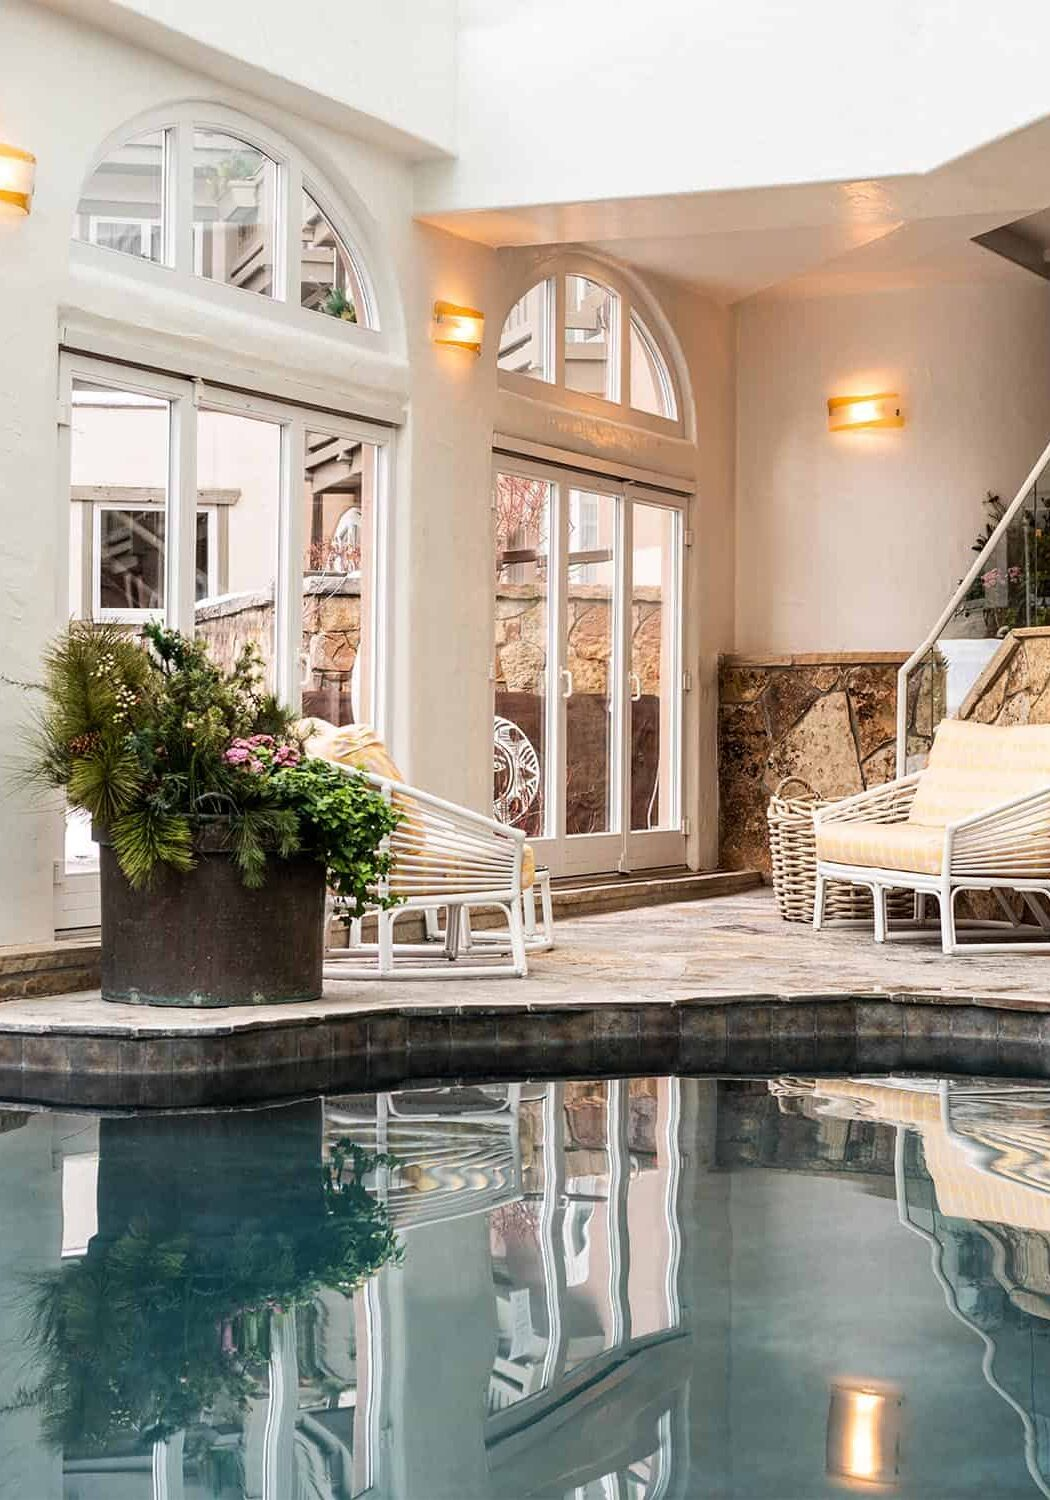 Indoor pool area with patio furniture and large glass doors leading to an outdoor area